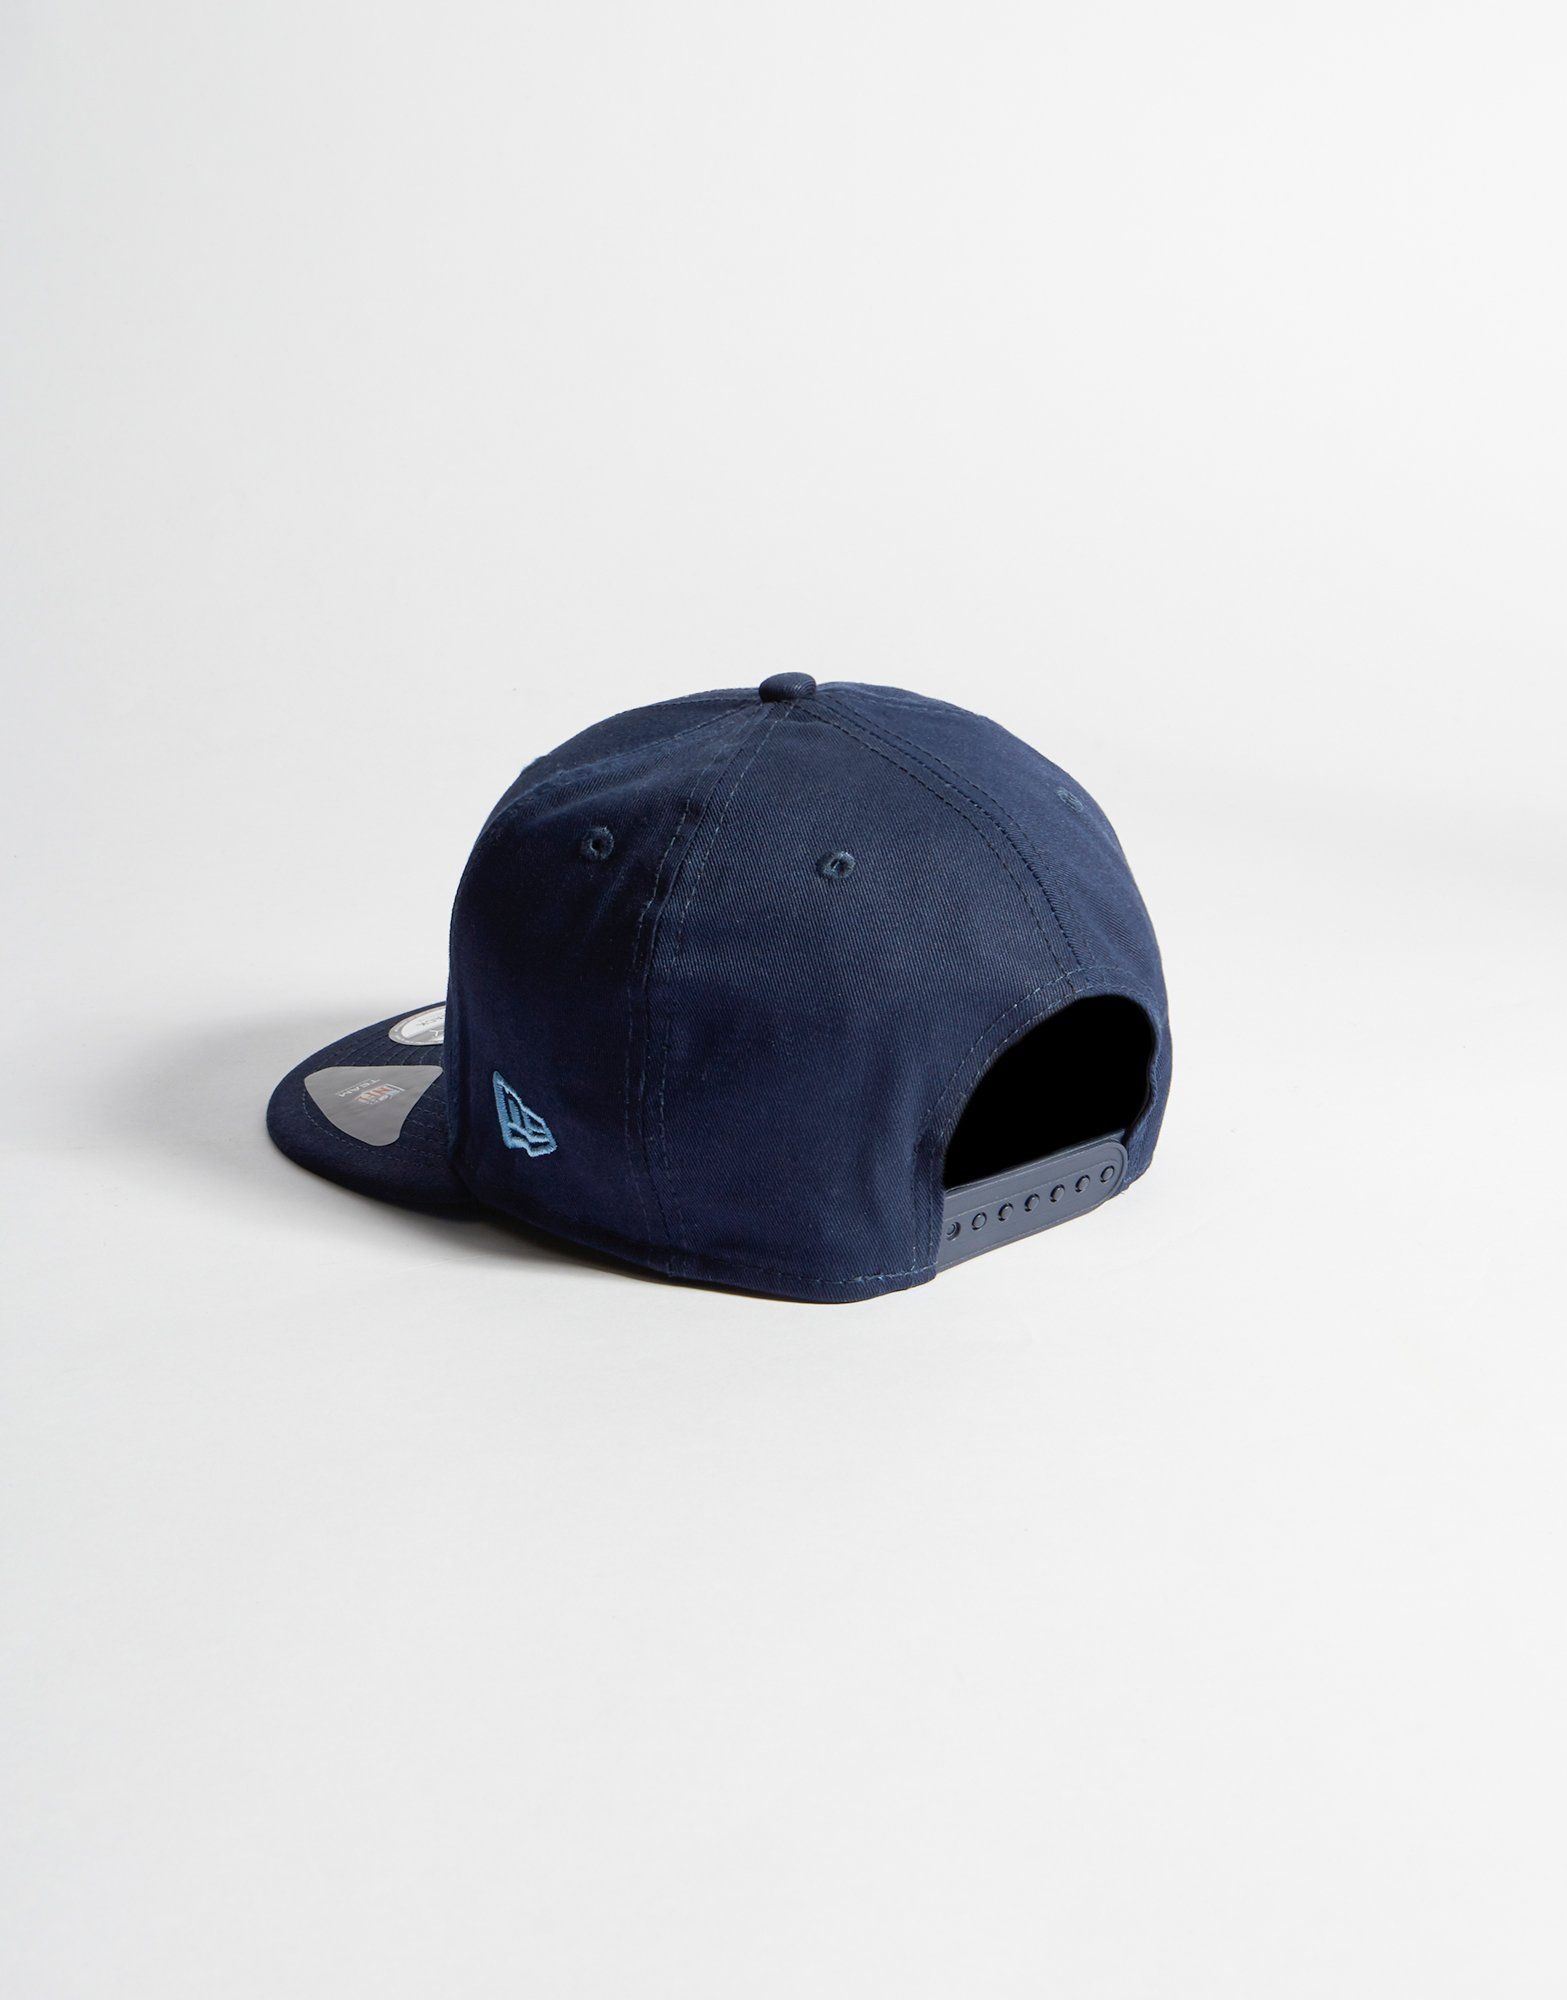 New Era Casquette NFL Tennessee Titans 9FIFTY